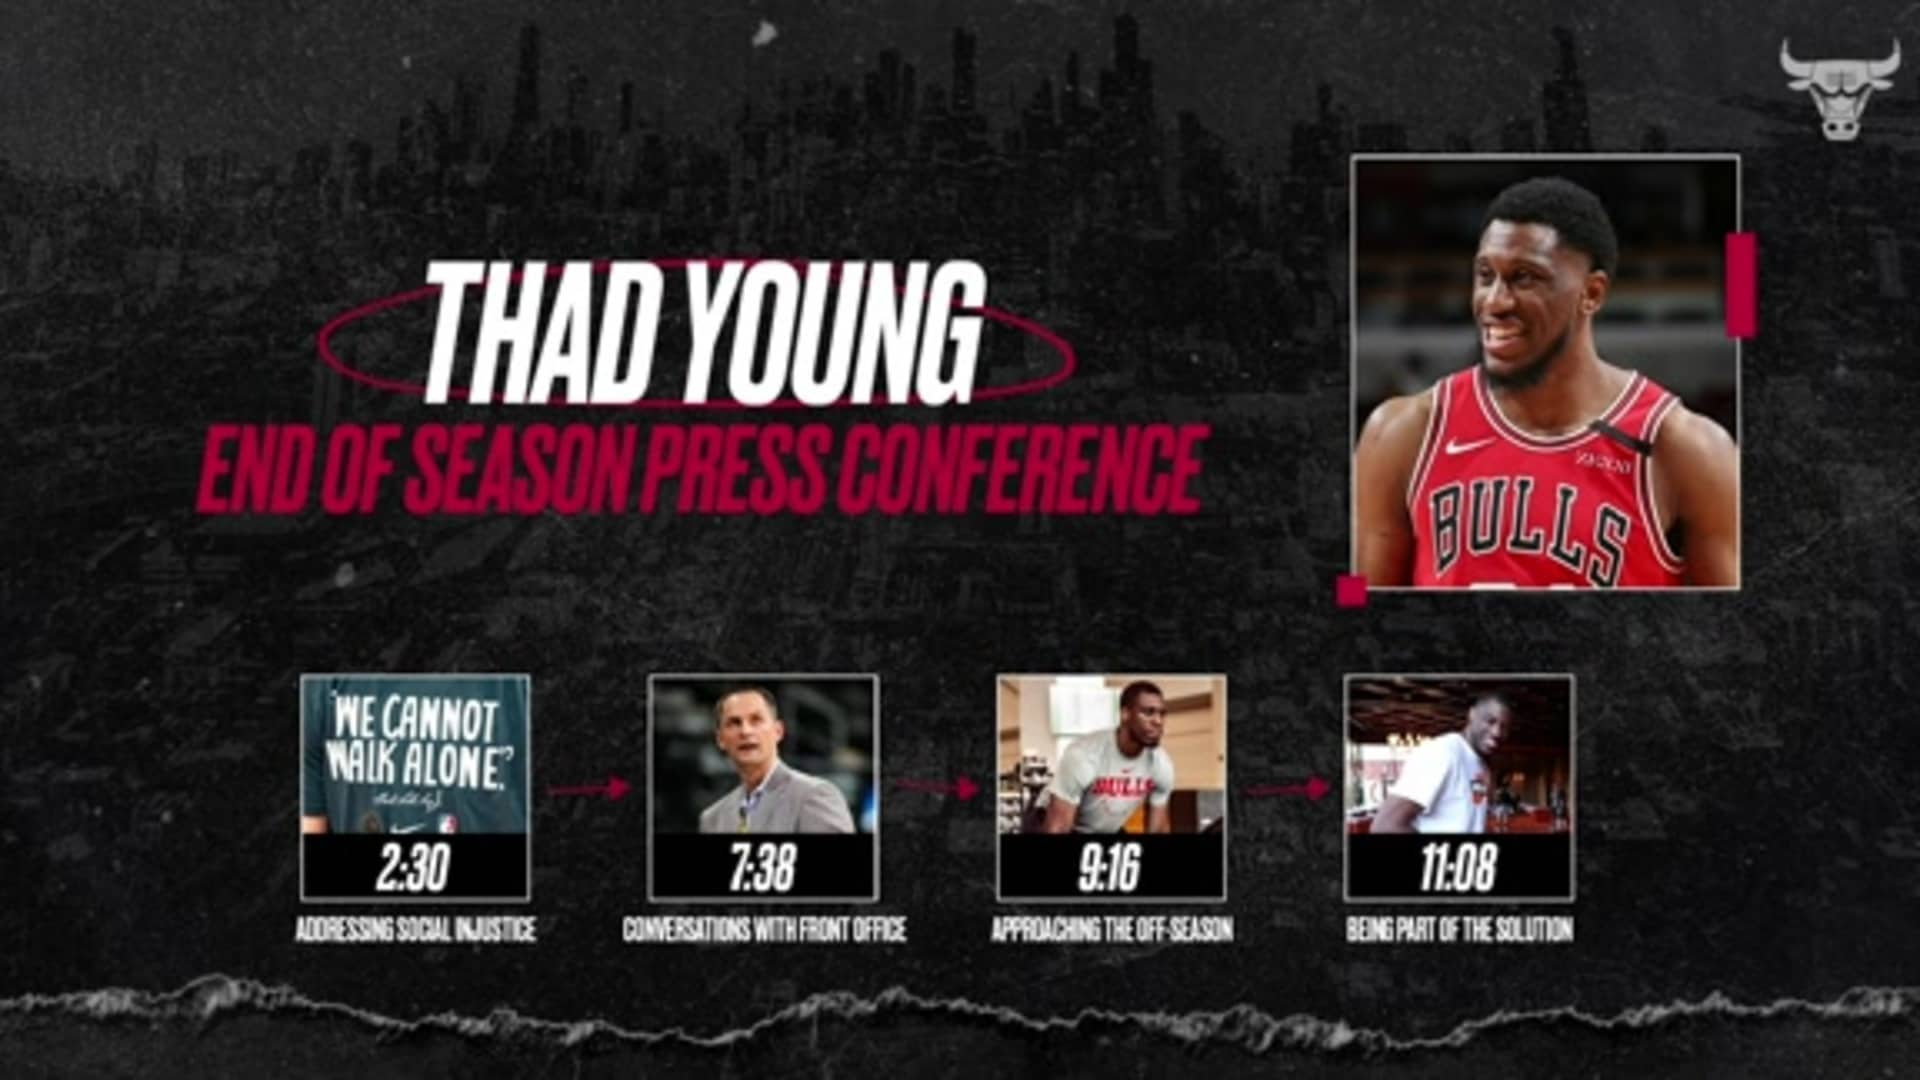 Thad Young End of Season Press Conference